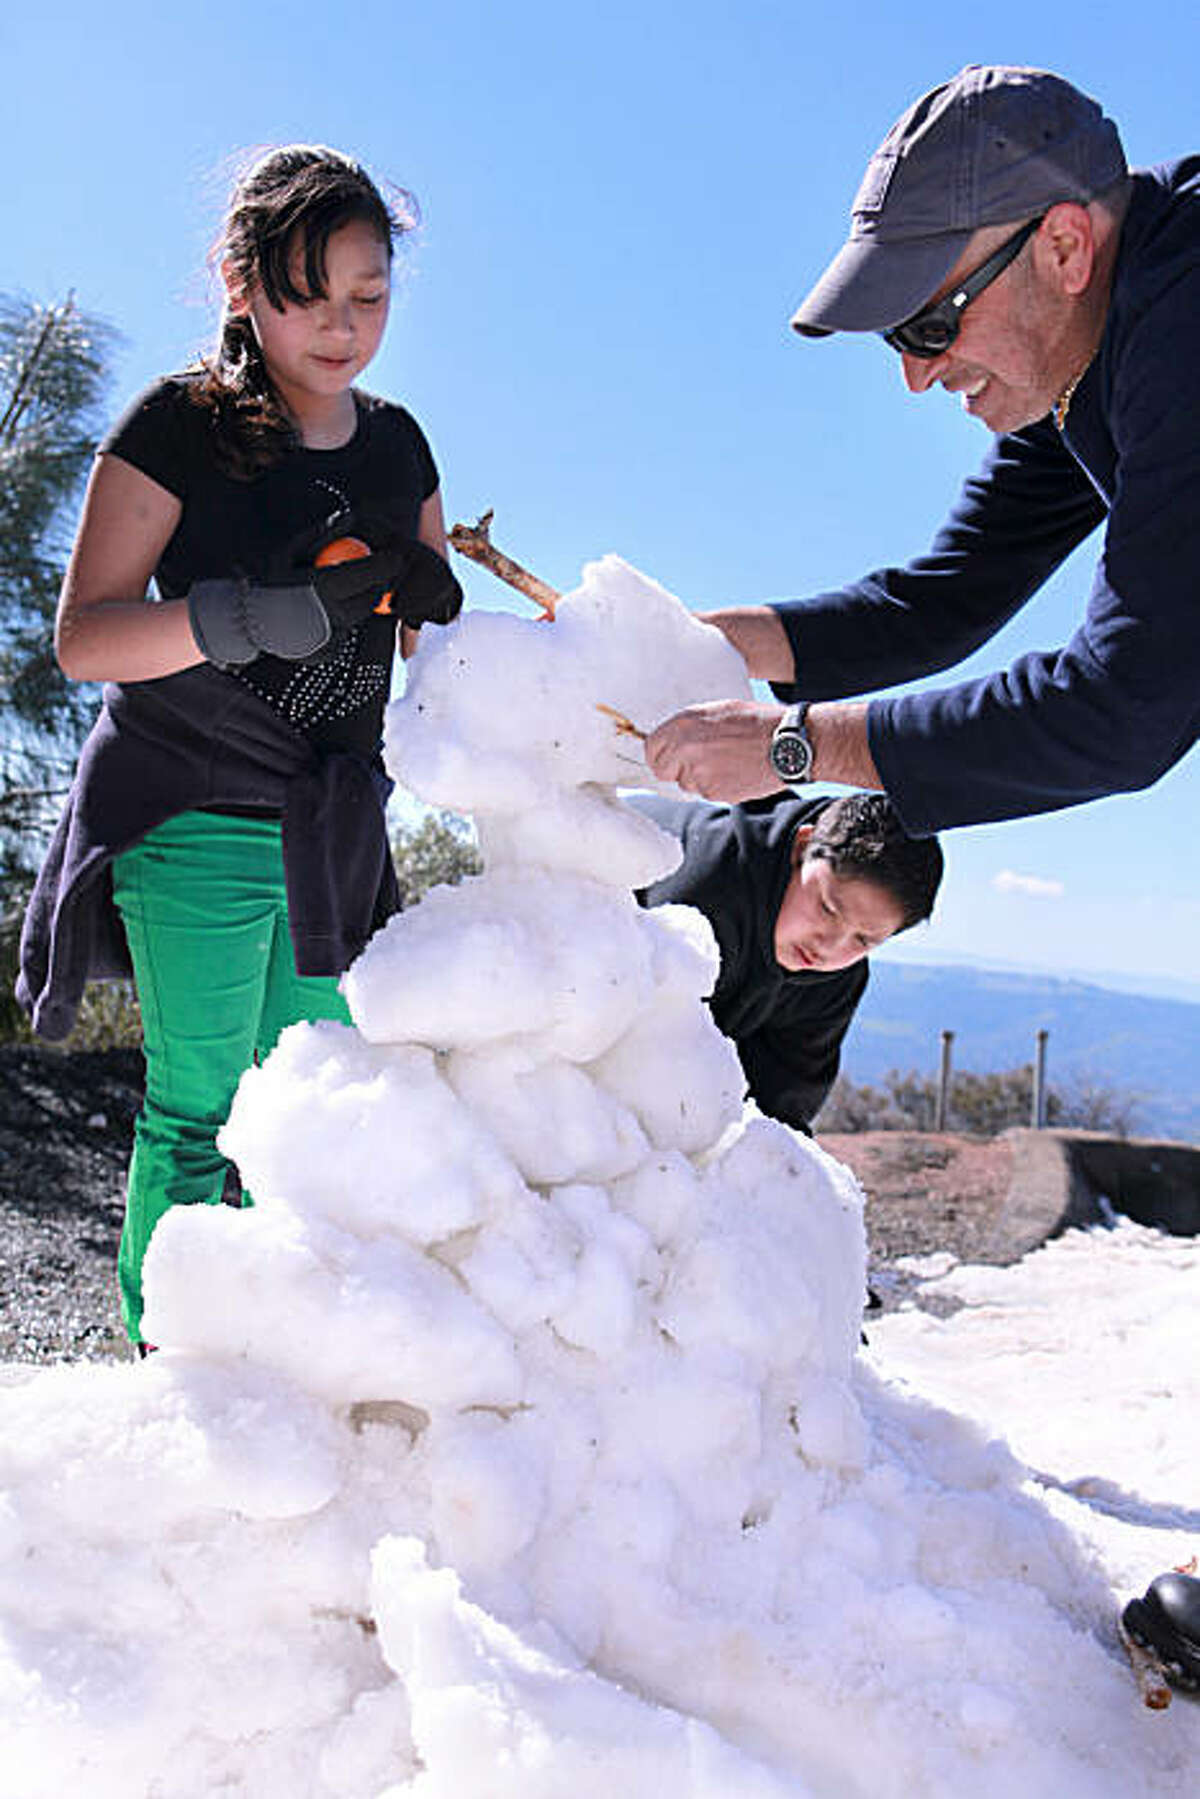 From Left, Stephanie Magallon, 10 , and Juan Magallon, 13, of Concord, get help building a snowman from Thanasis Golematis, of Pittsburg at Juniper Camp Ground overlook in Mt. Diablo State Park in Clayton, Calif. on Tuesday, February 22, 2011. Kat Wade / Special to the Chronicle